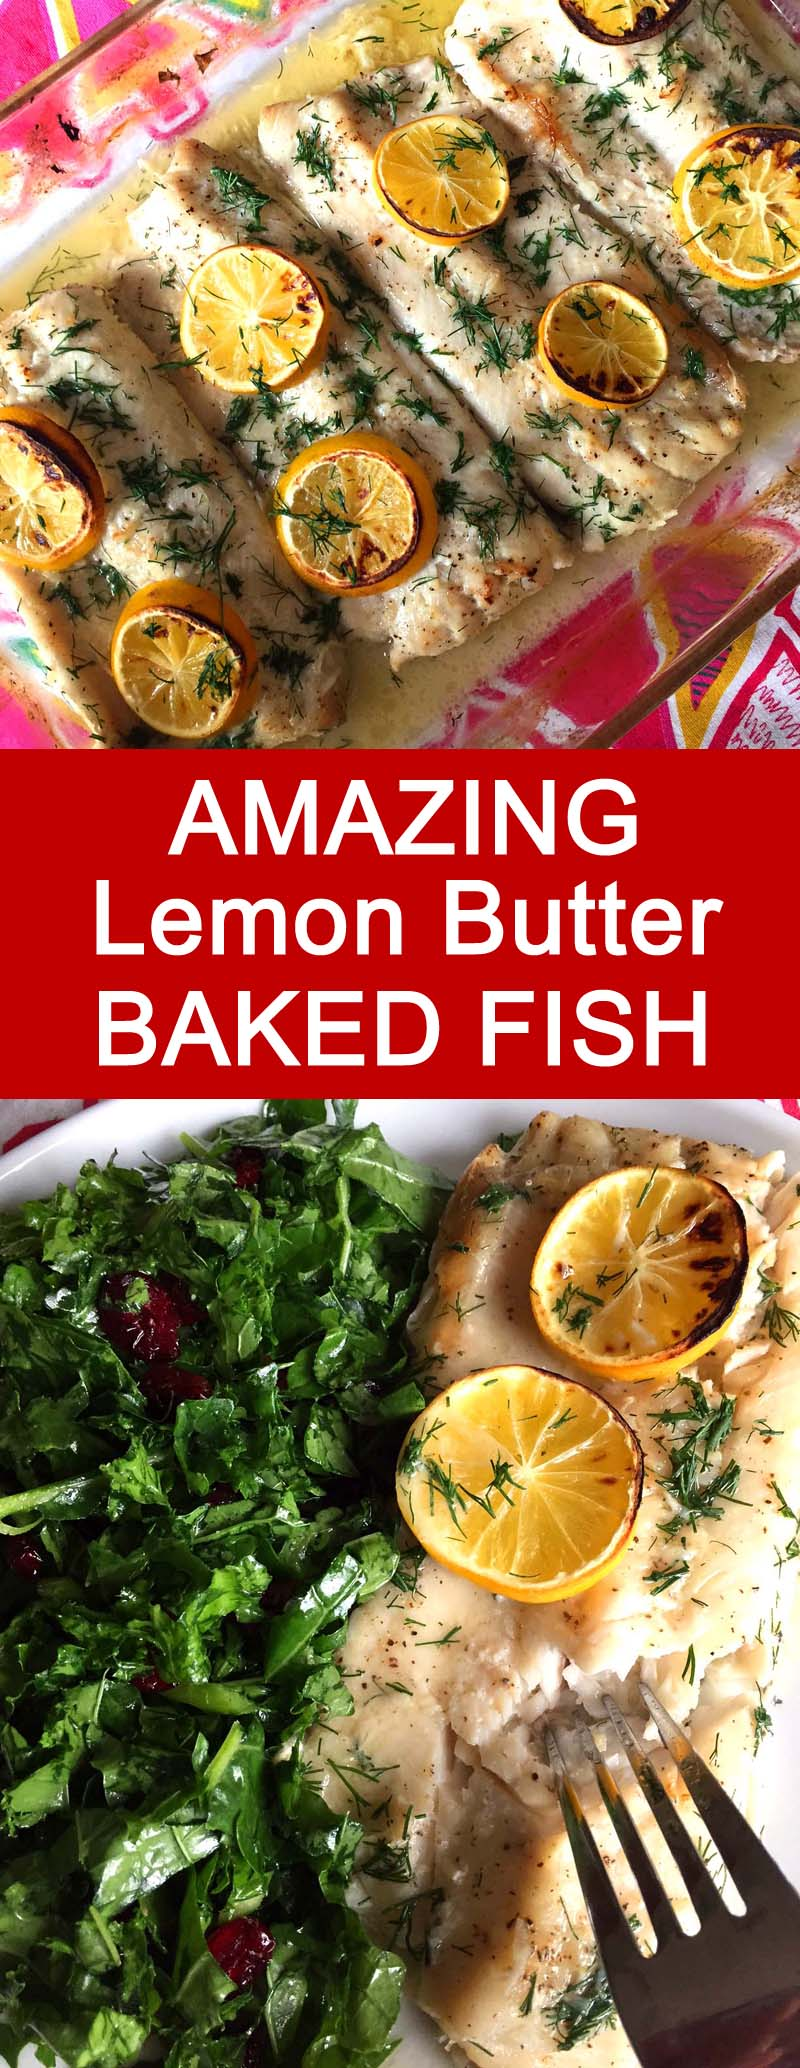 This baked lemon butter fish is amazing! A perfect easy recipe to make with tilapia or white fish, this one is a keeper! This lemon butter garlic sauce is so flavorful!